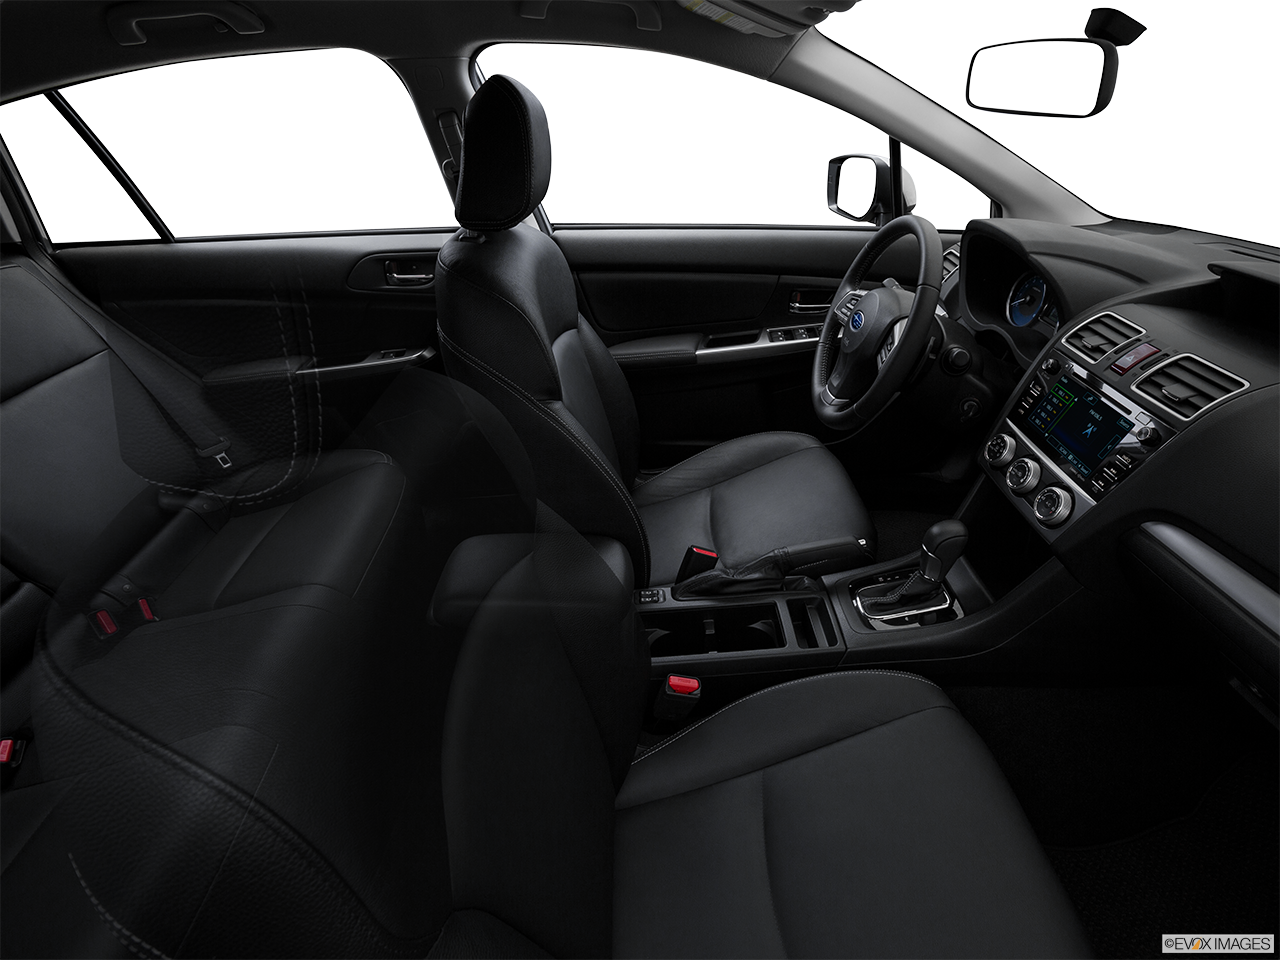 Interior View Of 2016 Subaru Impreza in Los Angeles